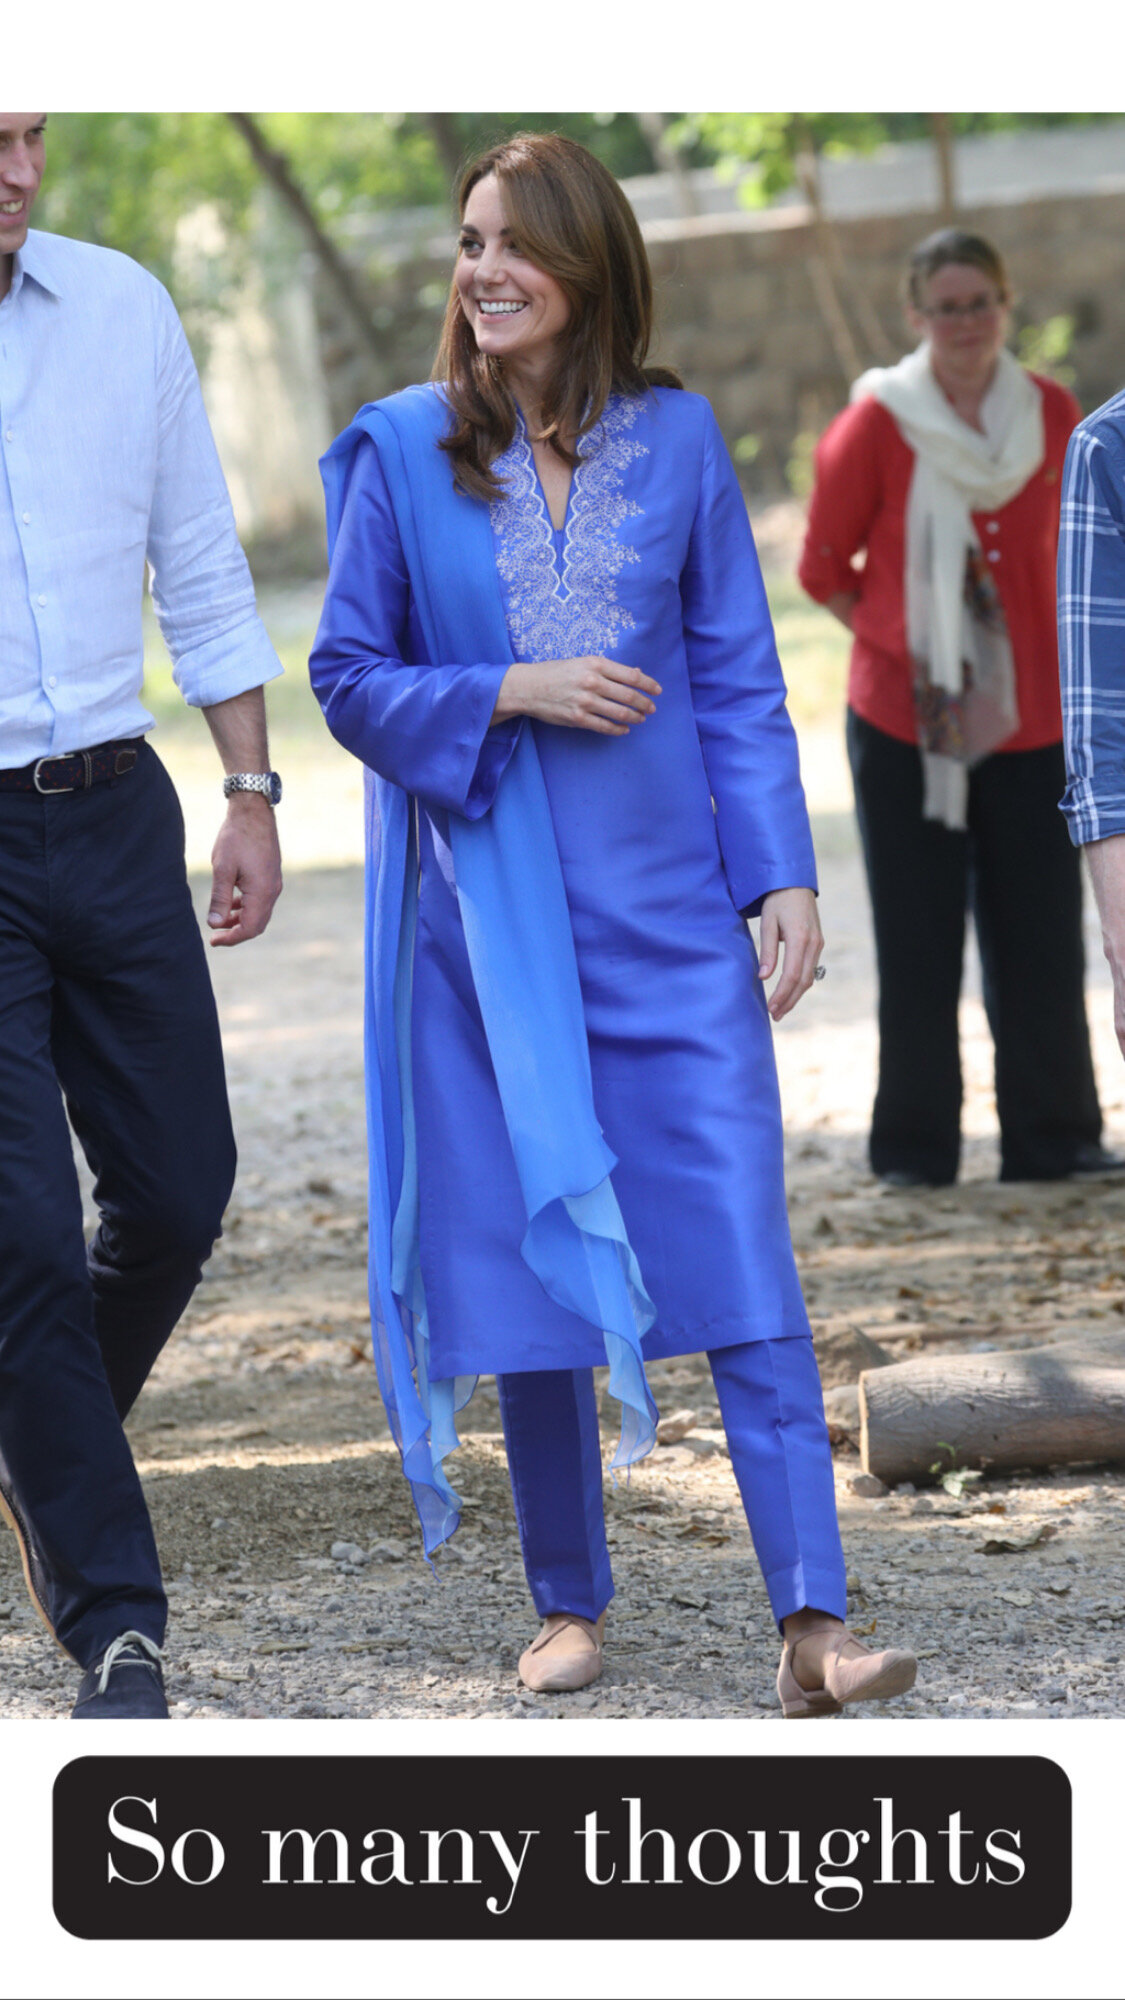 Kate_PakistanDay2_look1a.JPG